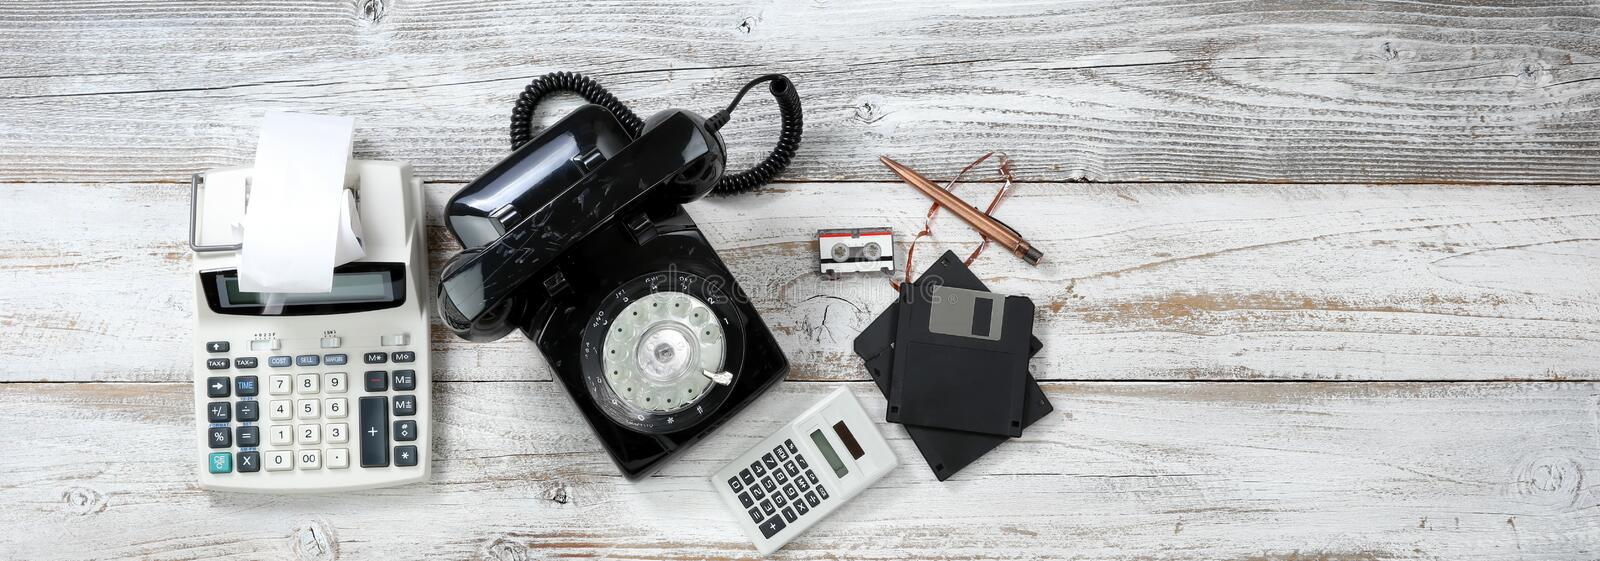 Top view of Vintage technologies that includes rotary dial phone and old computer data storage devices plus calculators. Overhead view of Vintage technologies royalty free stock images